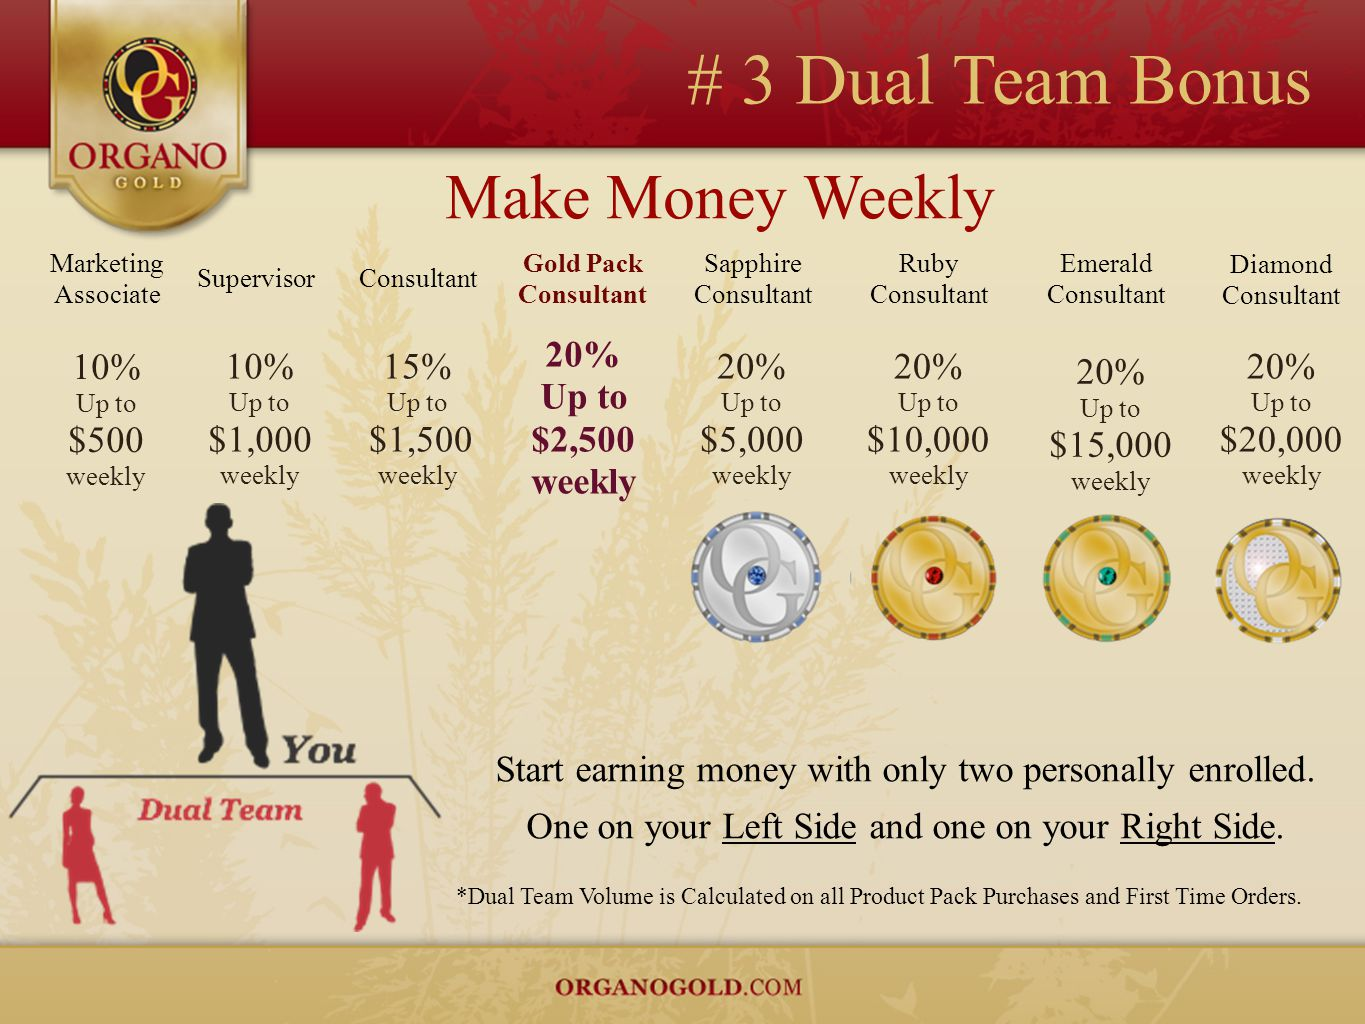 # 3 Dual Team Bonus Start earning money with only two personally enrolled. One on your Left Side and one on your Right Side. Marketing Associate 10% U